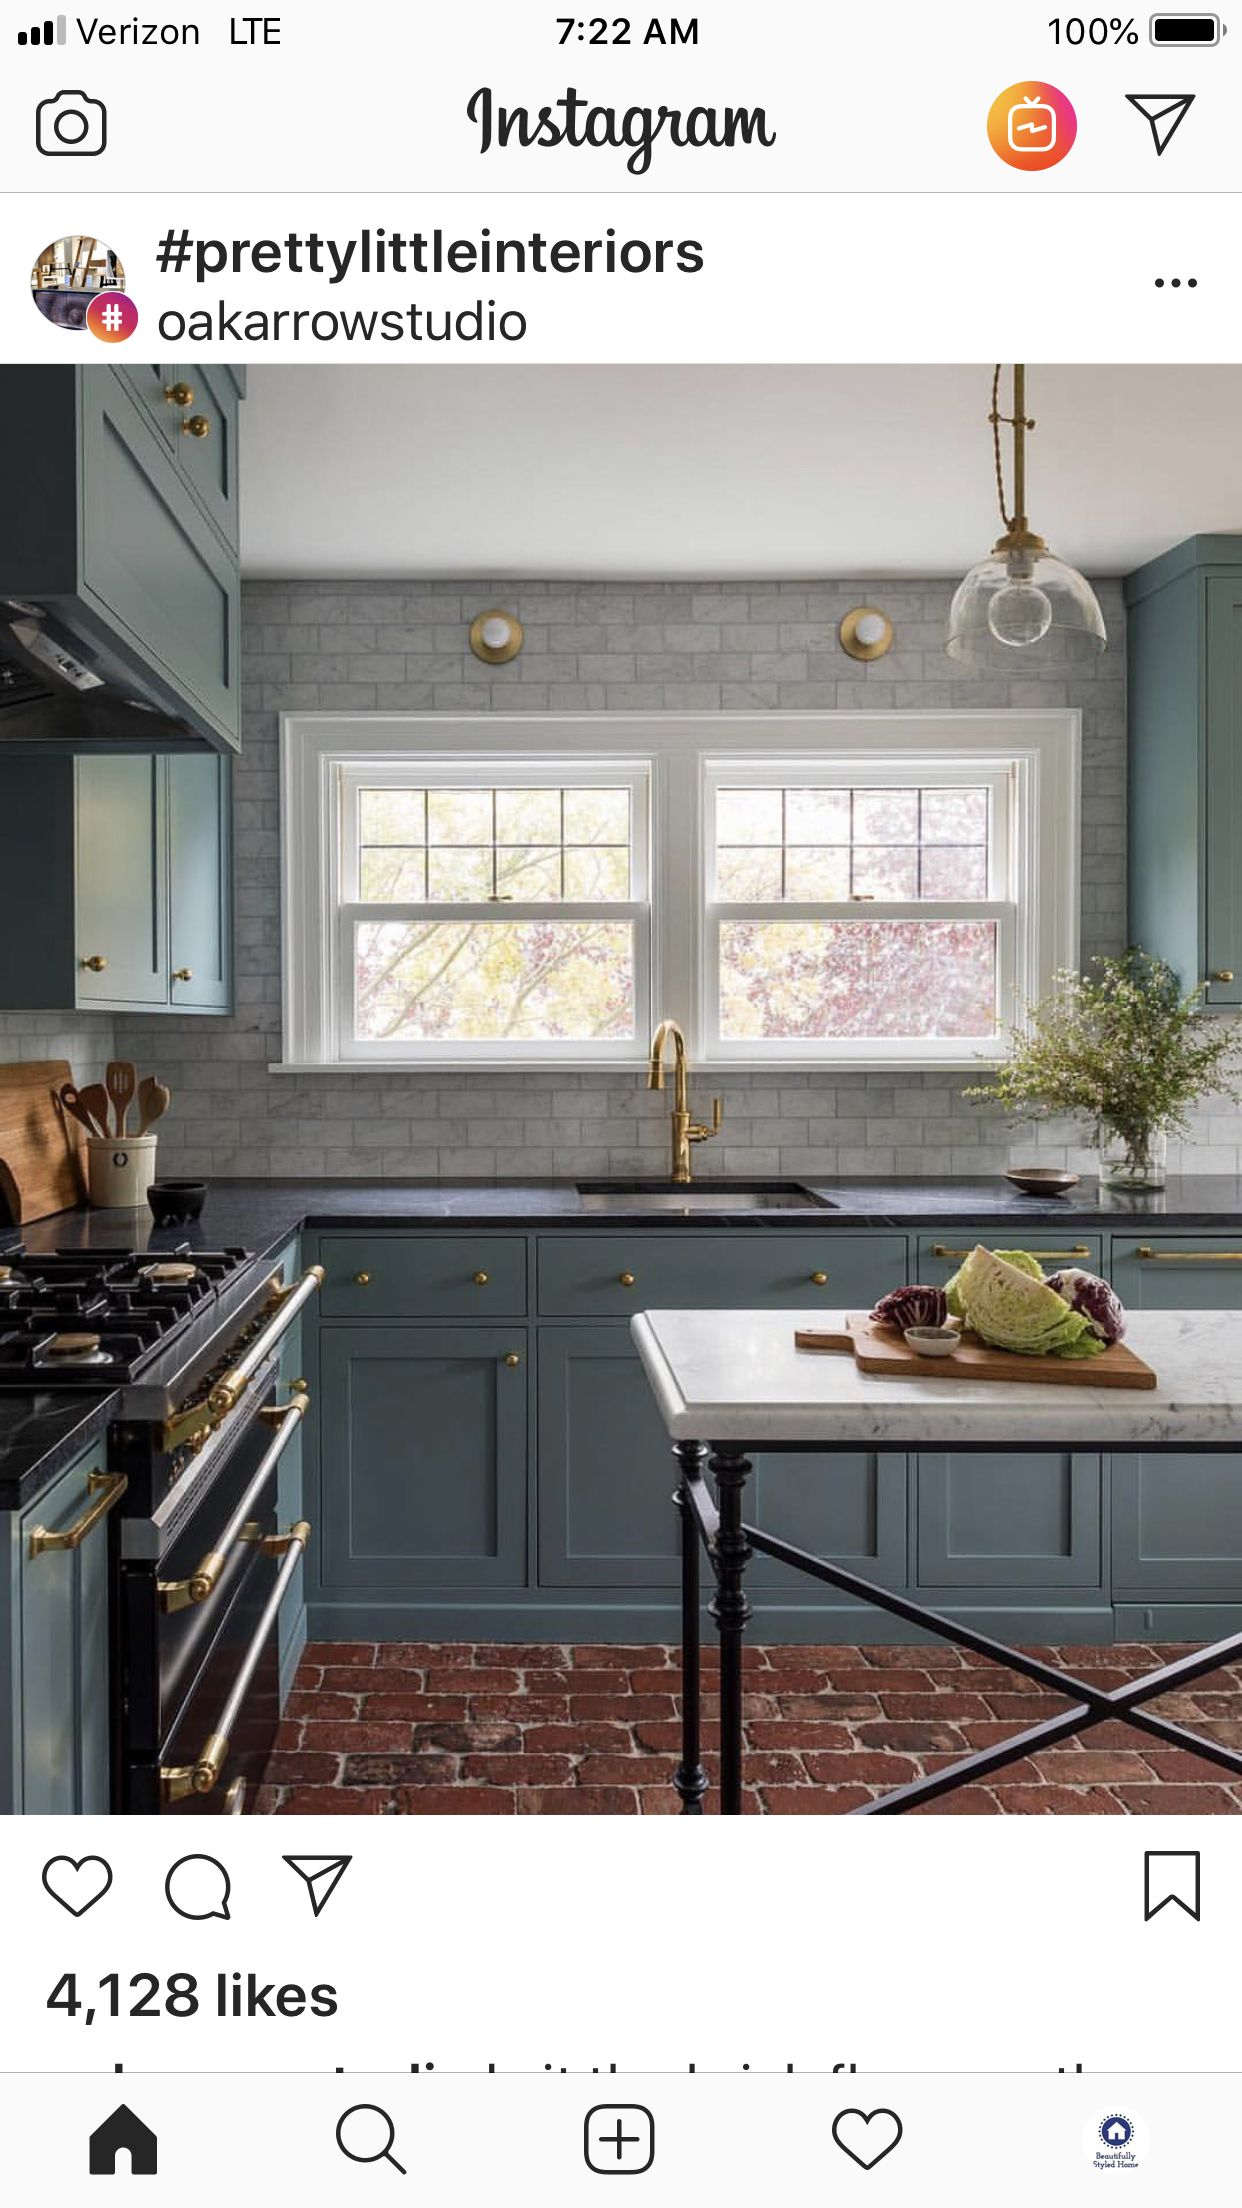 Pin by Bente on Decor for the Decades in 2019 | Home Decor, Kitchen Decorating Above Kitchen Cabinets With White Ironstone on small kitchen design white, decorating small space dining room, decorating top of kitchen cabinets, decorating above refrigerator, decorating ideas small spaces magazine,